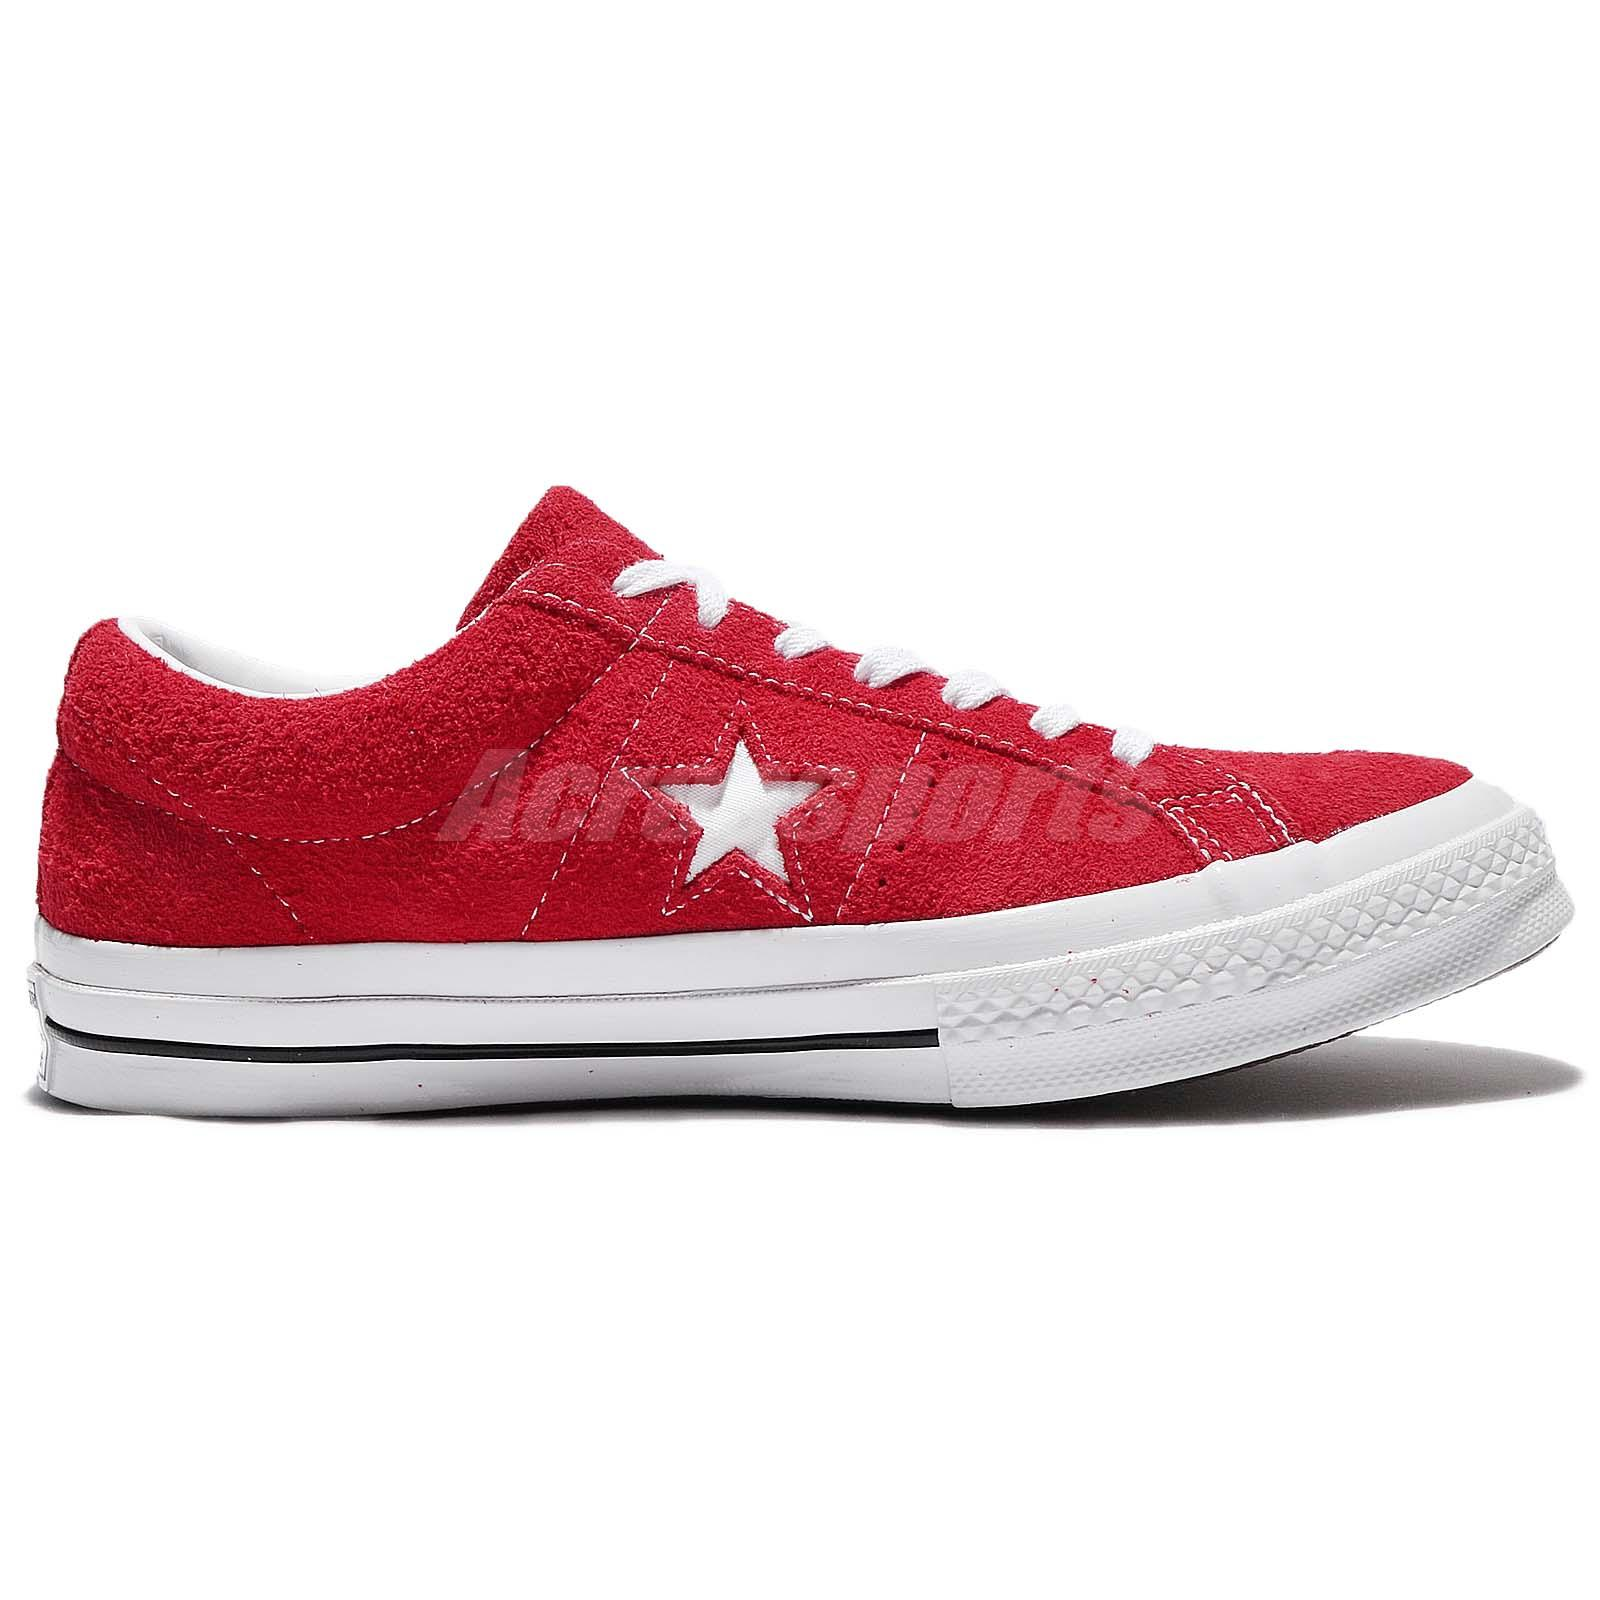 832b0f3435eb4b Converse One Star Suede Red White Men Women Skateboarding Shoes ...